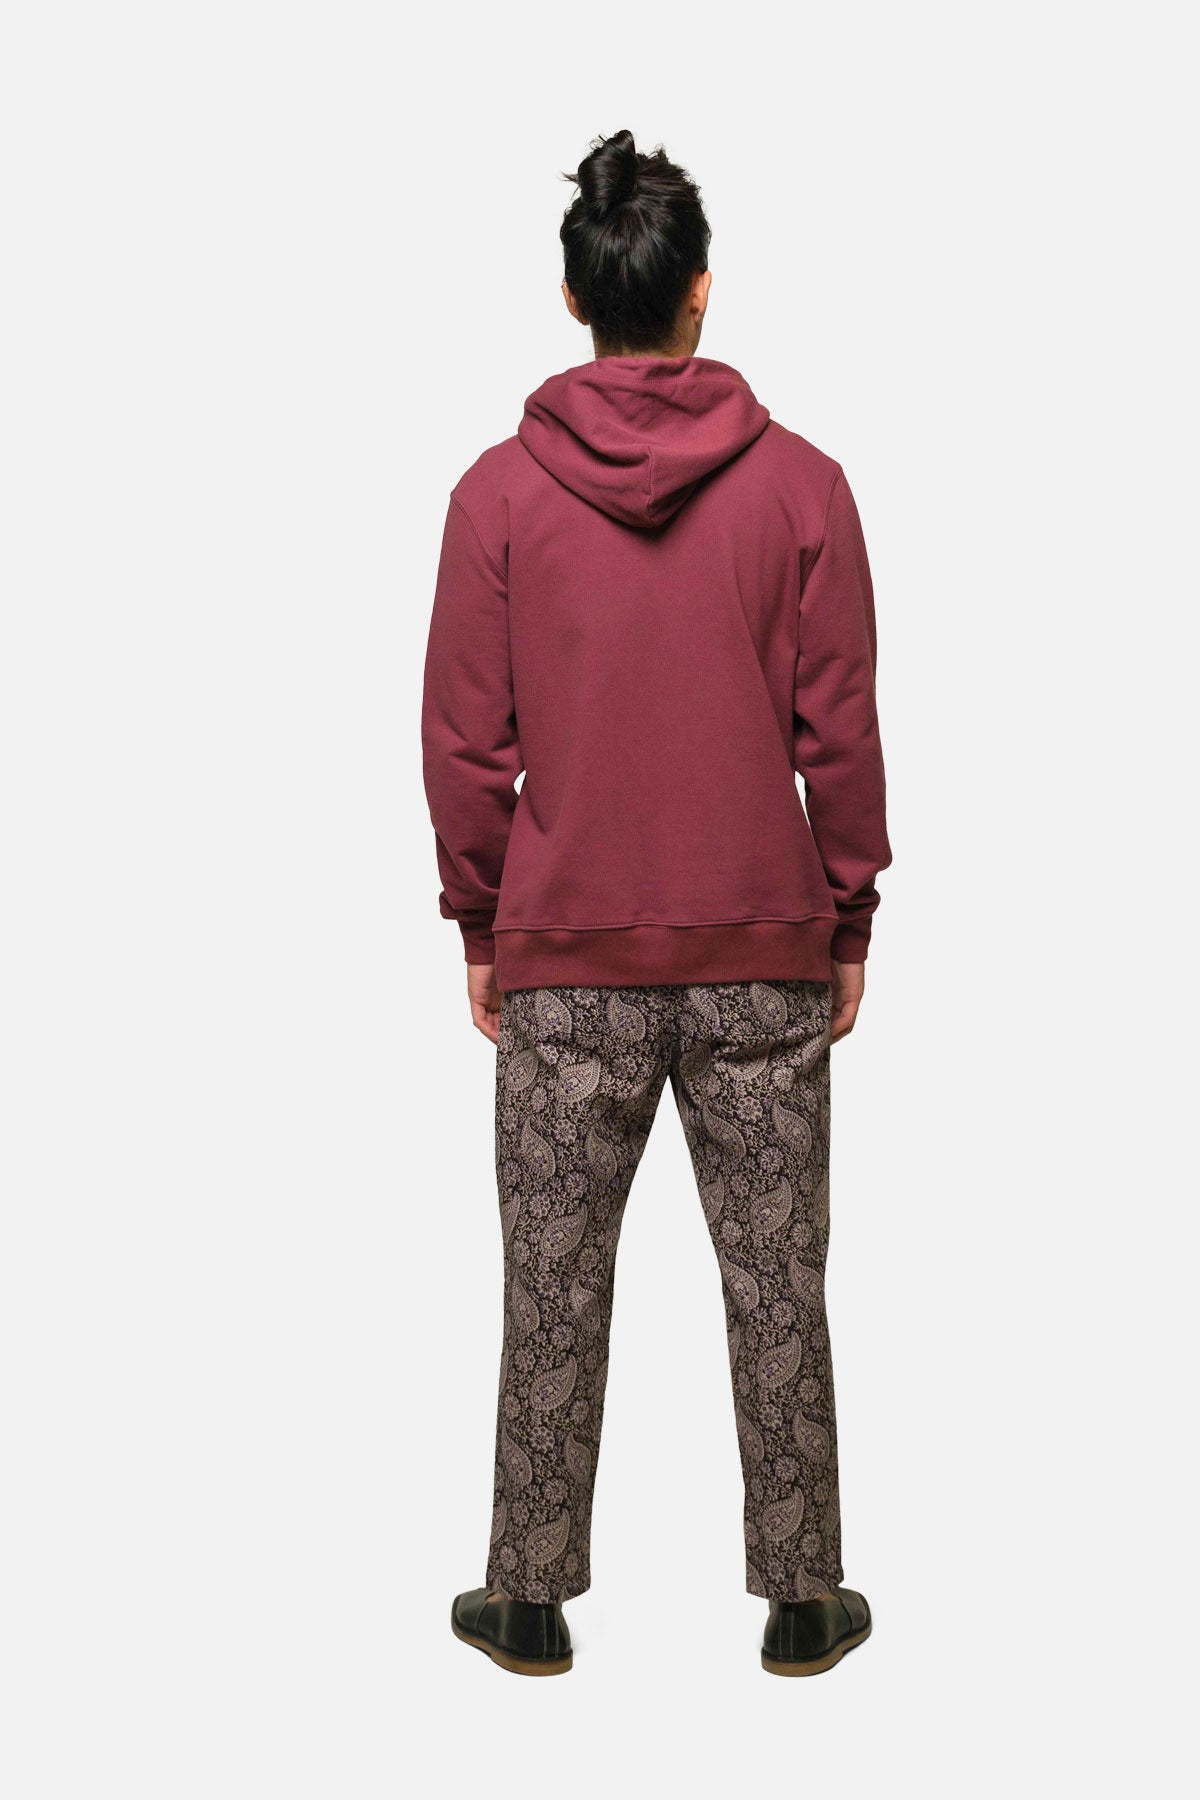 MORTON AVE HOODIE IN CRIMSON - Fortune Goods